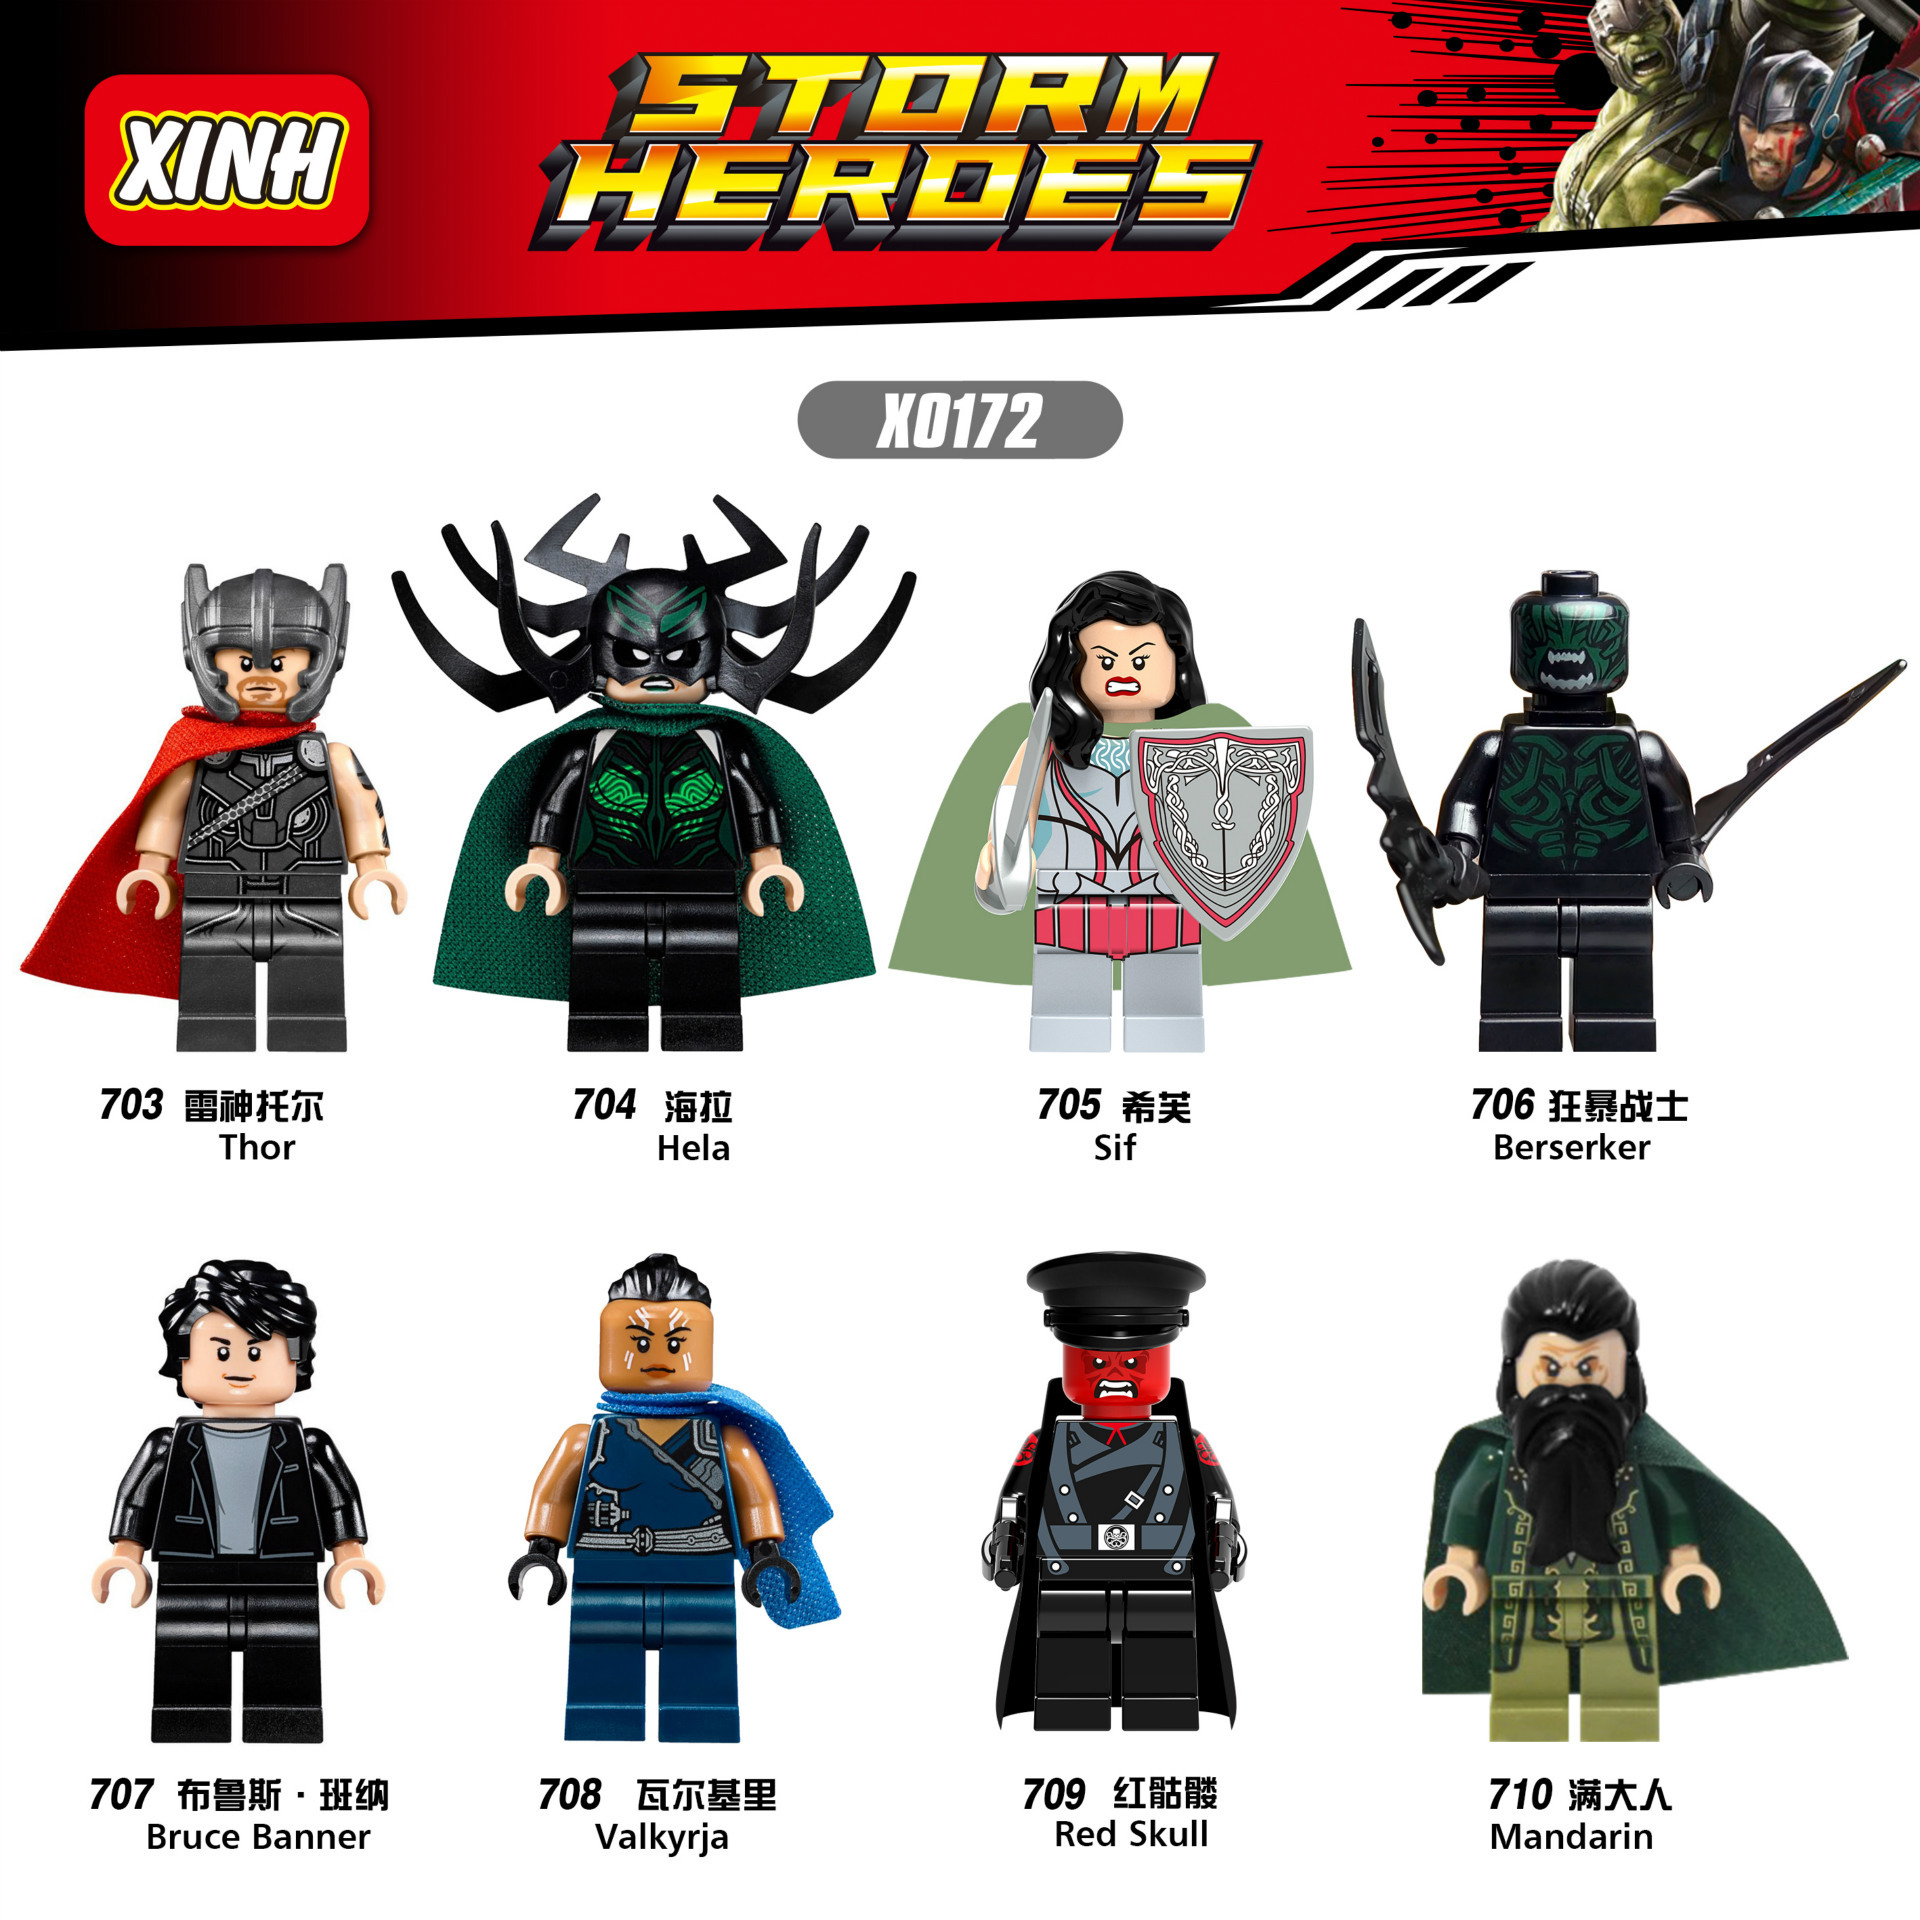 Marvel Super Heroes Racing Hela Thor Bruce Banner Berserker Valky Legoed Building Blocks Action Figures Toys For Children